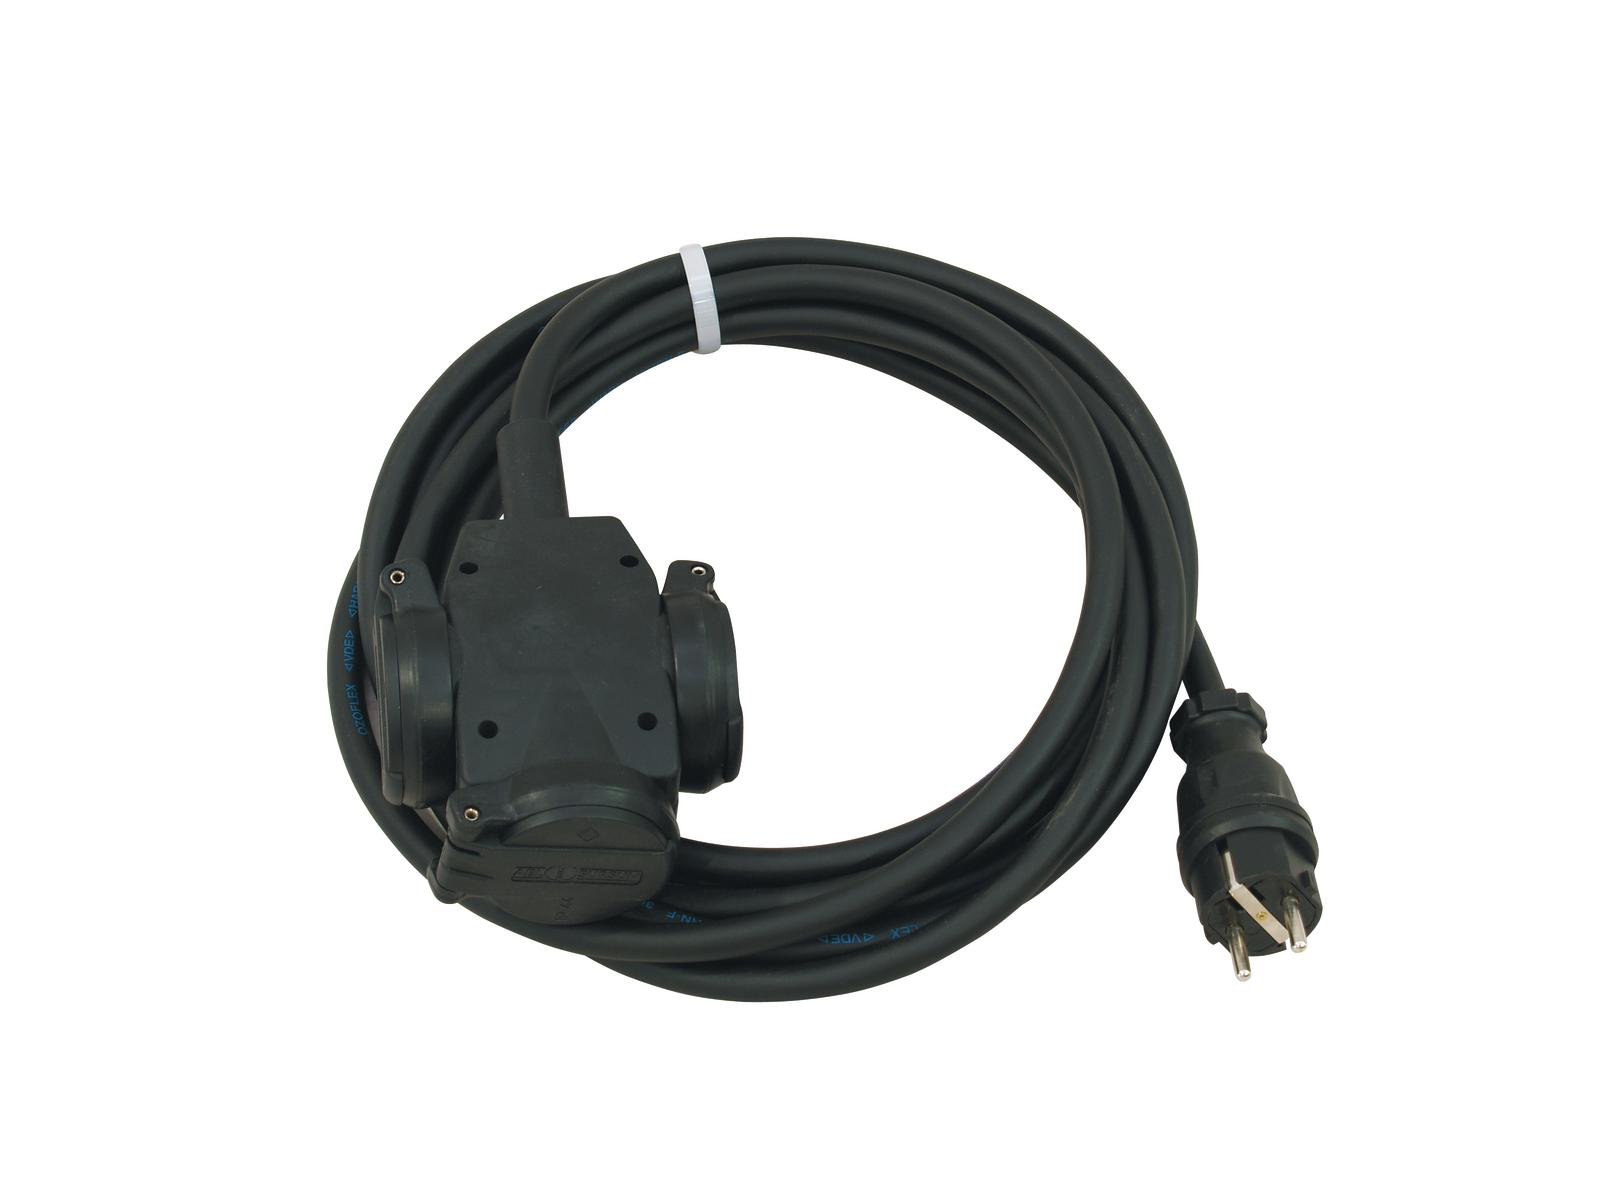 Extension PSSO 3x2,5 5M cable H07RN 250 V / 16 A triple socket